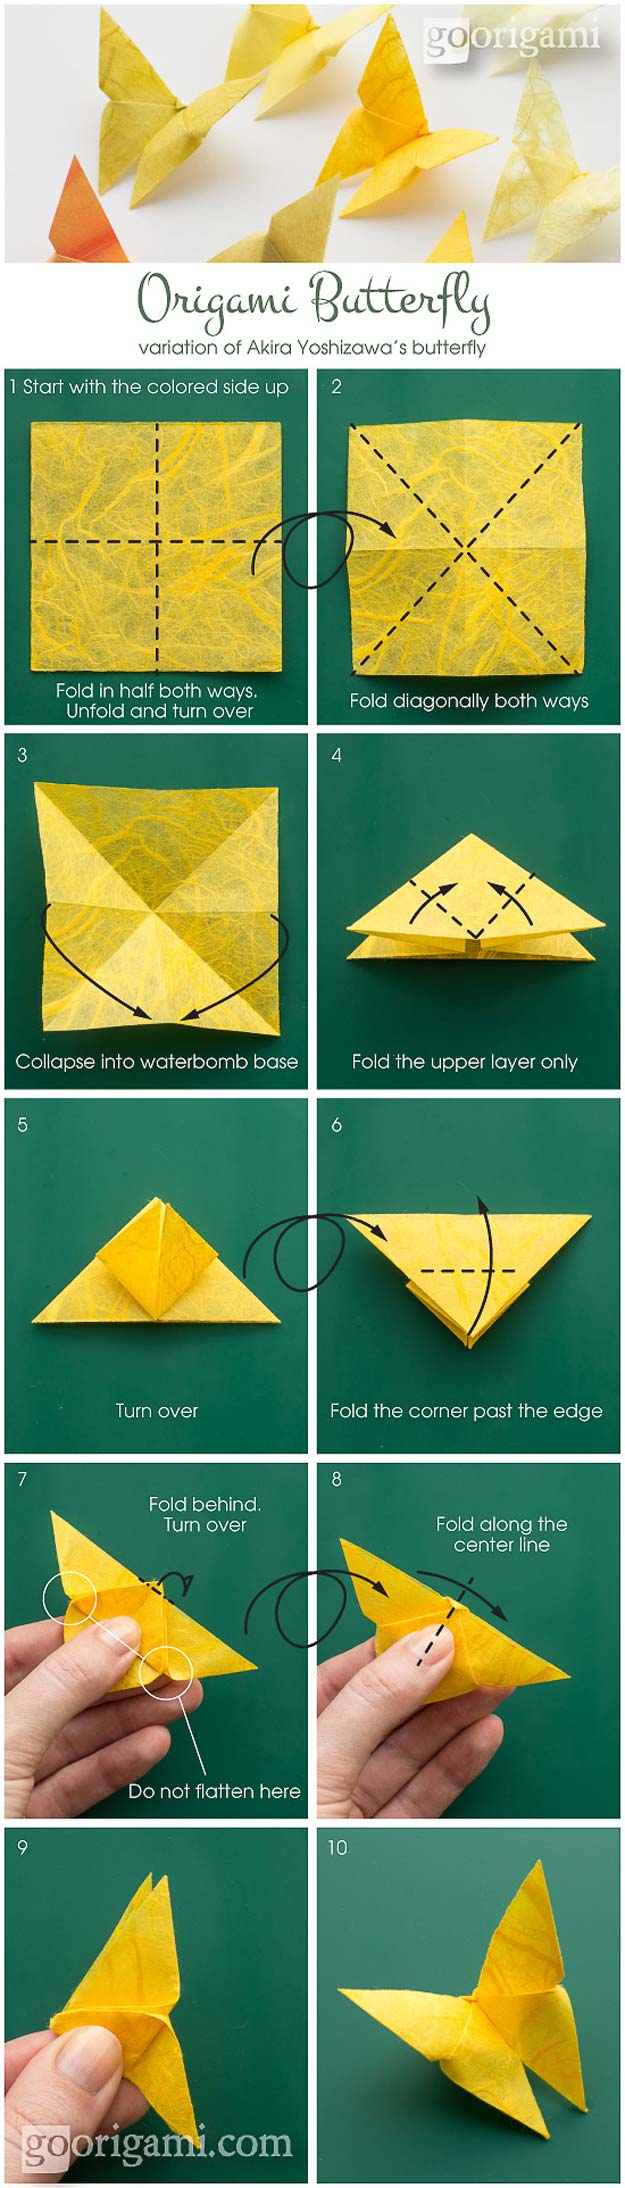 Best Origami Tutorials - Origami Butterfly - Easy DIY Origami Tutorial Projects for With Instructions for Flowers, Dog, Gift Box, Star, Owl, Buttlerfly, Heart and Bookmark, Animals - Fun Paper Crafts for Teens, Kids and Adults #origami #crafts